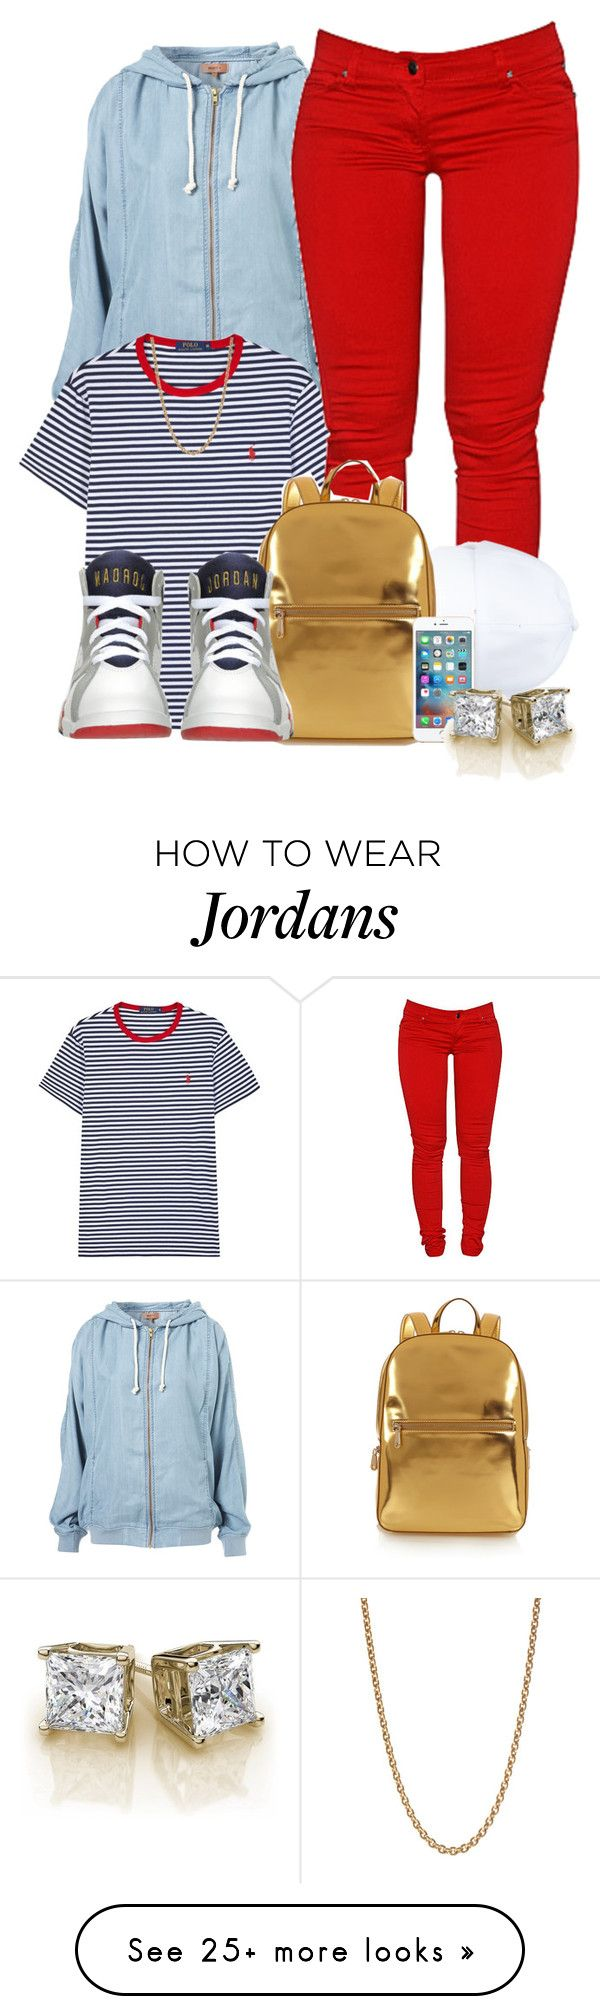 """""""Untitled #518"""" by b-elkstone on Polyvore featuring Polo Ralph Lauren, Dollydagger, Forever 21, DKNY, Retrò and Givenchy"""